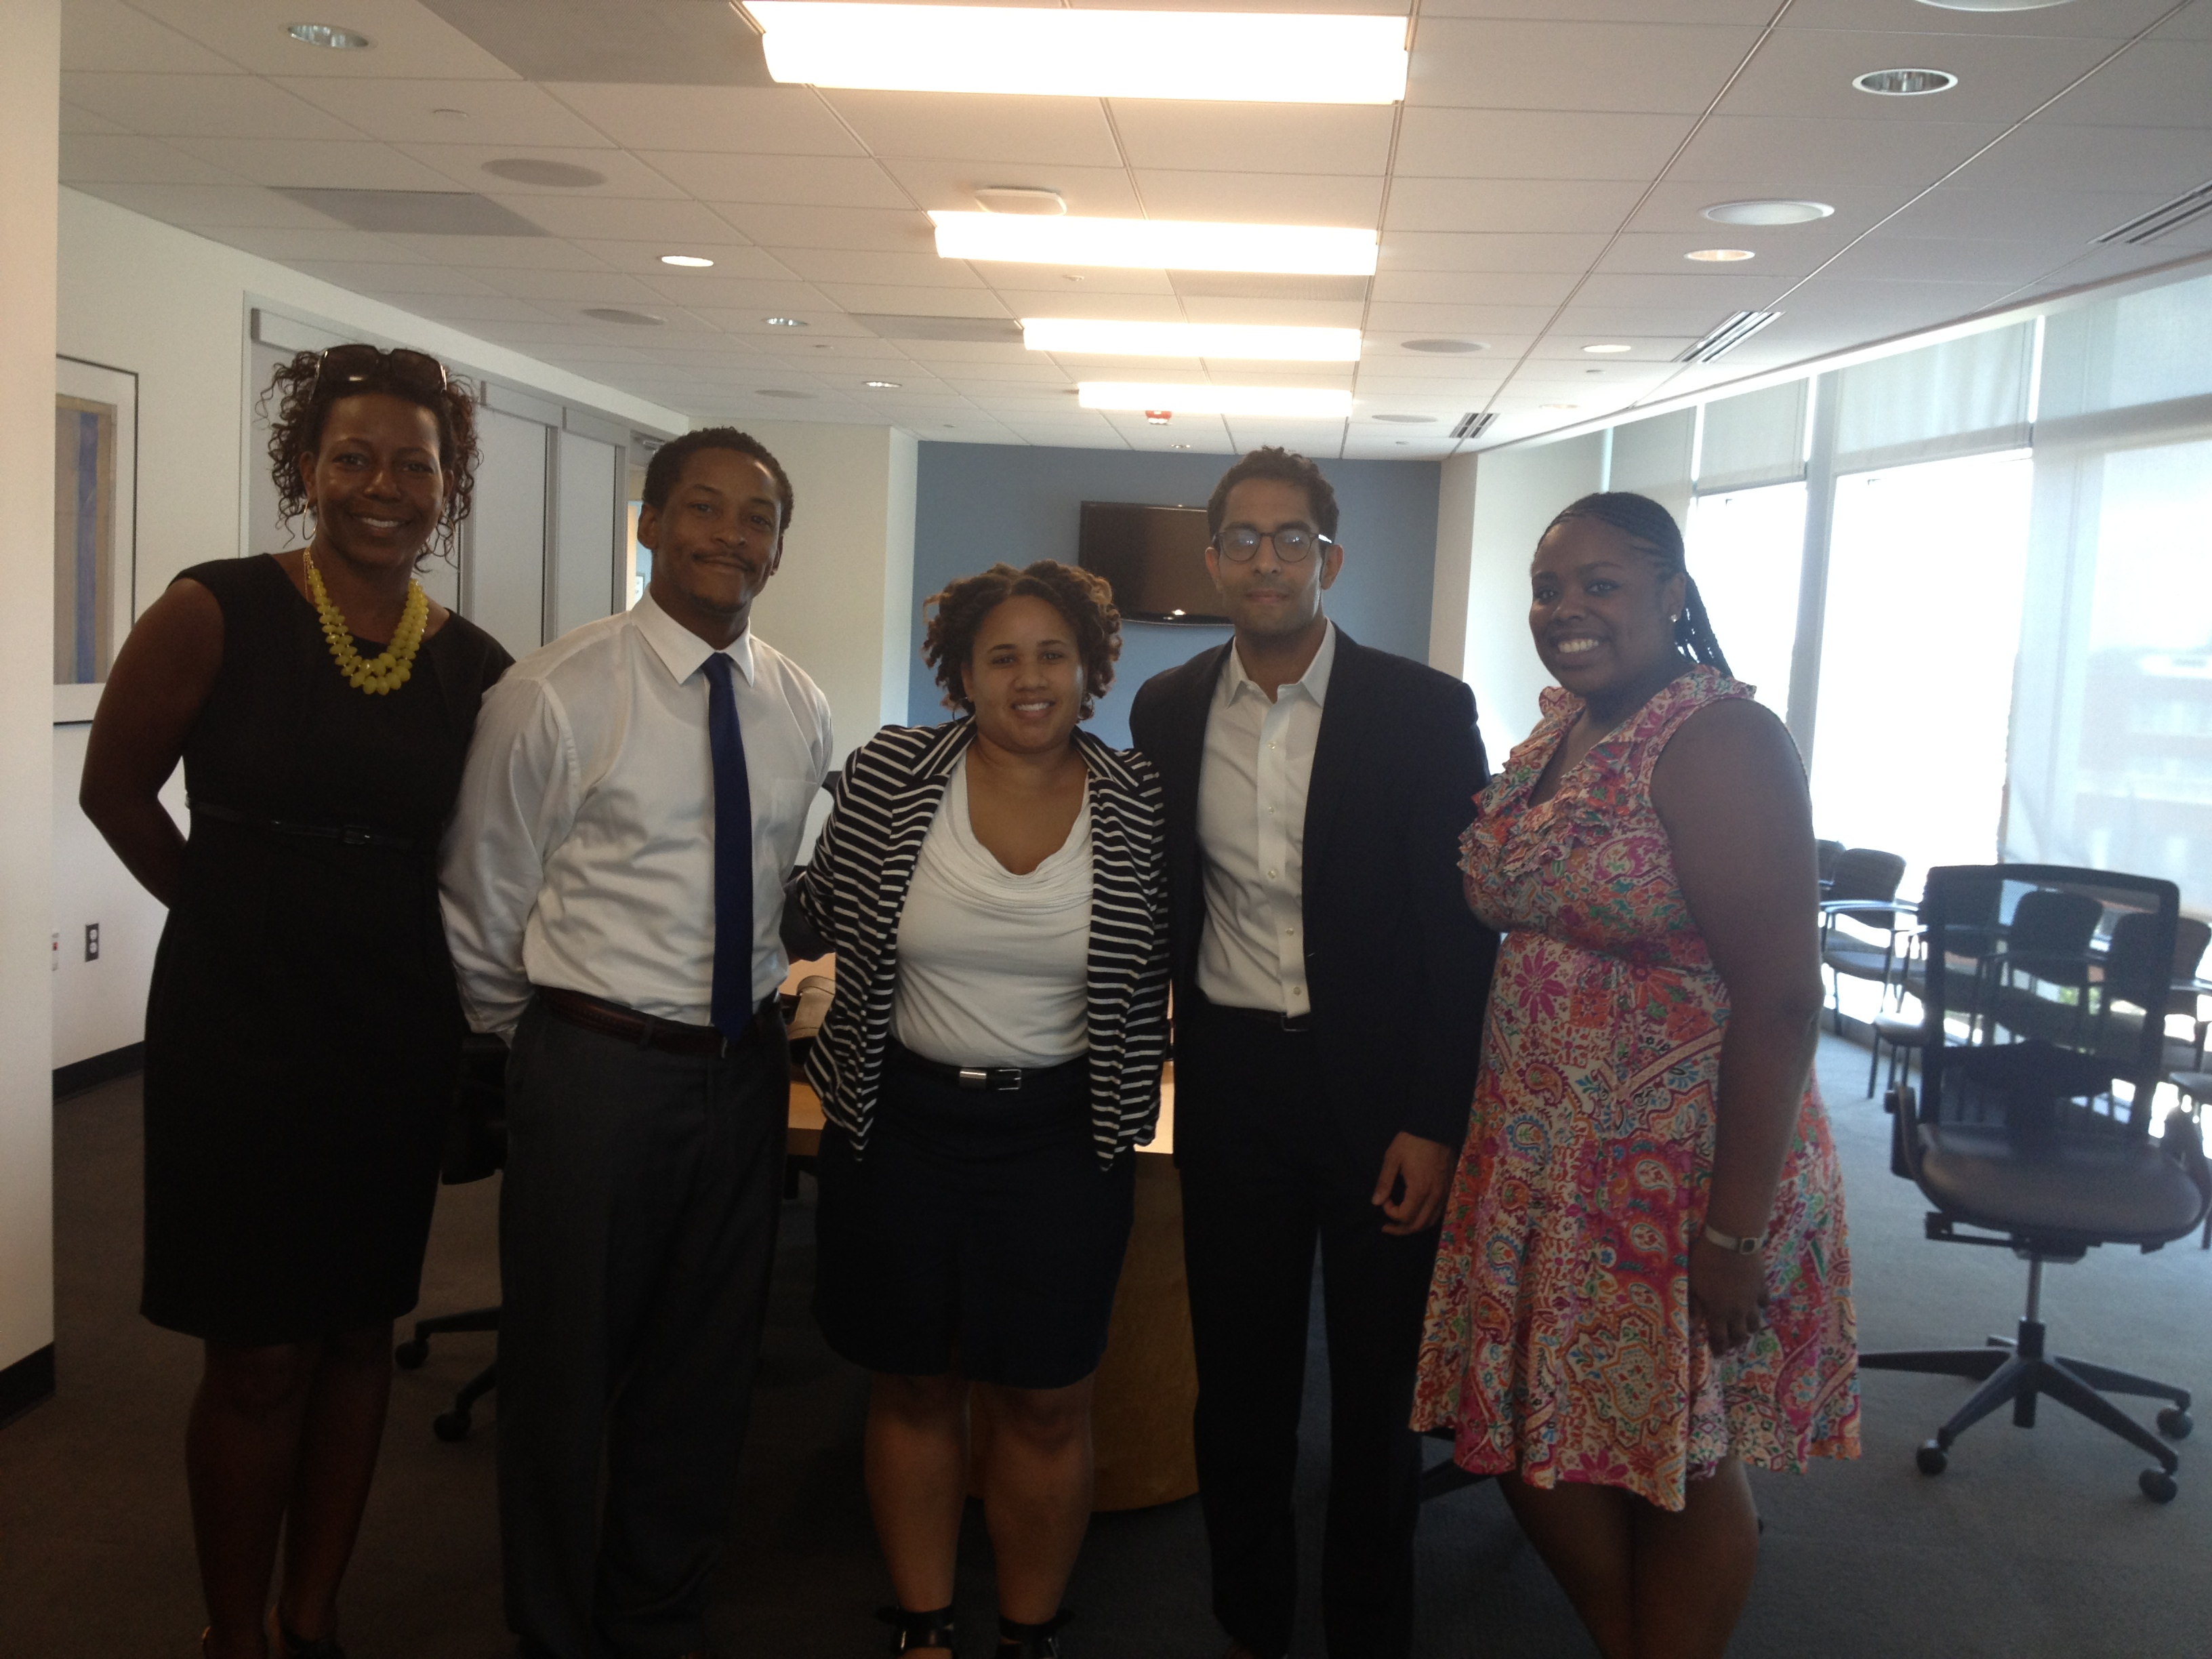 Consumer Contracts Regulations >> Capital City Fellows Program - Photo Gallery II | dchr